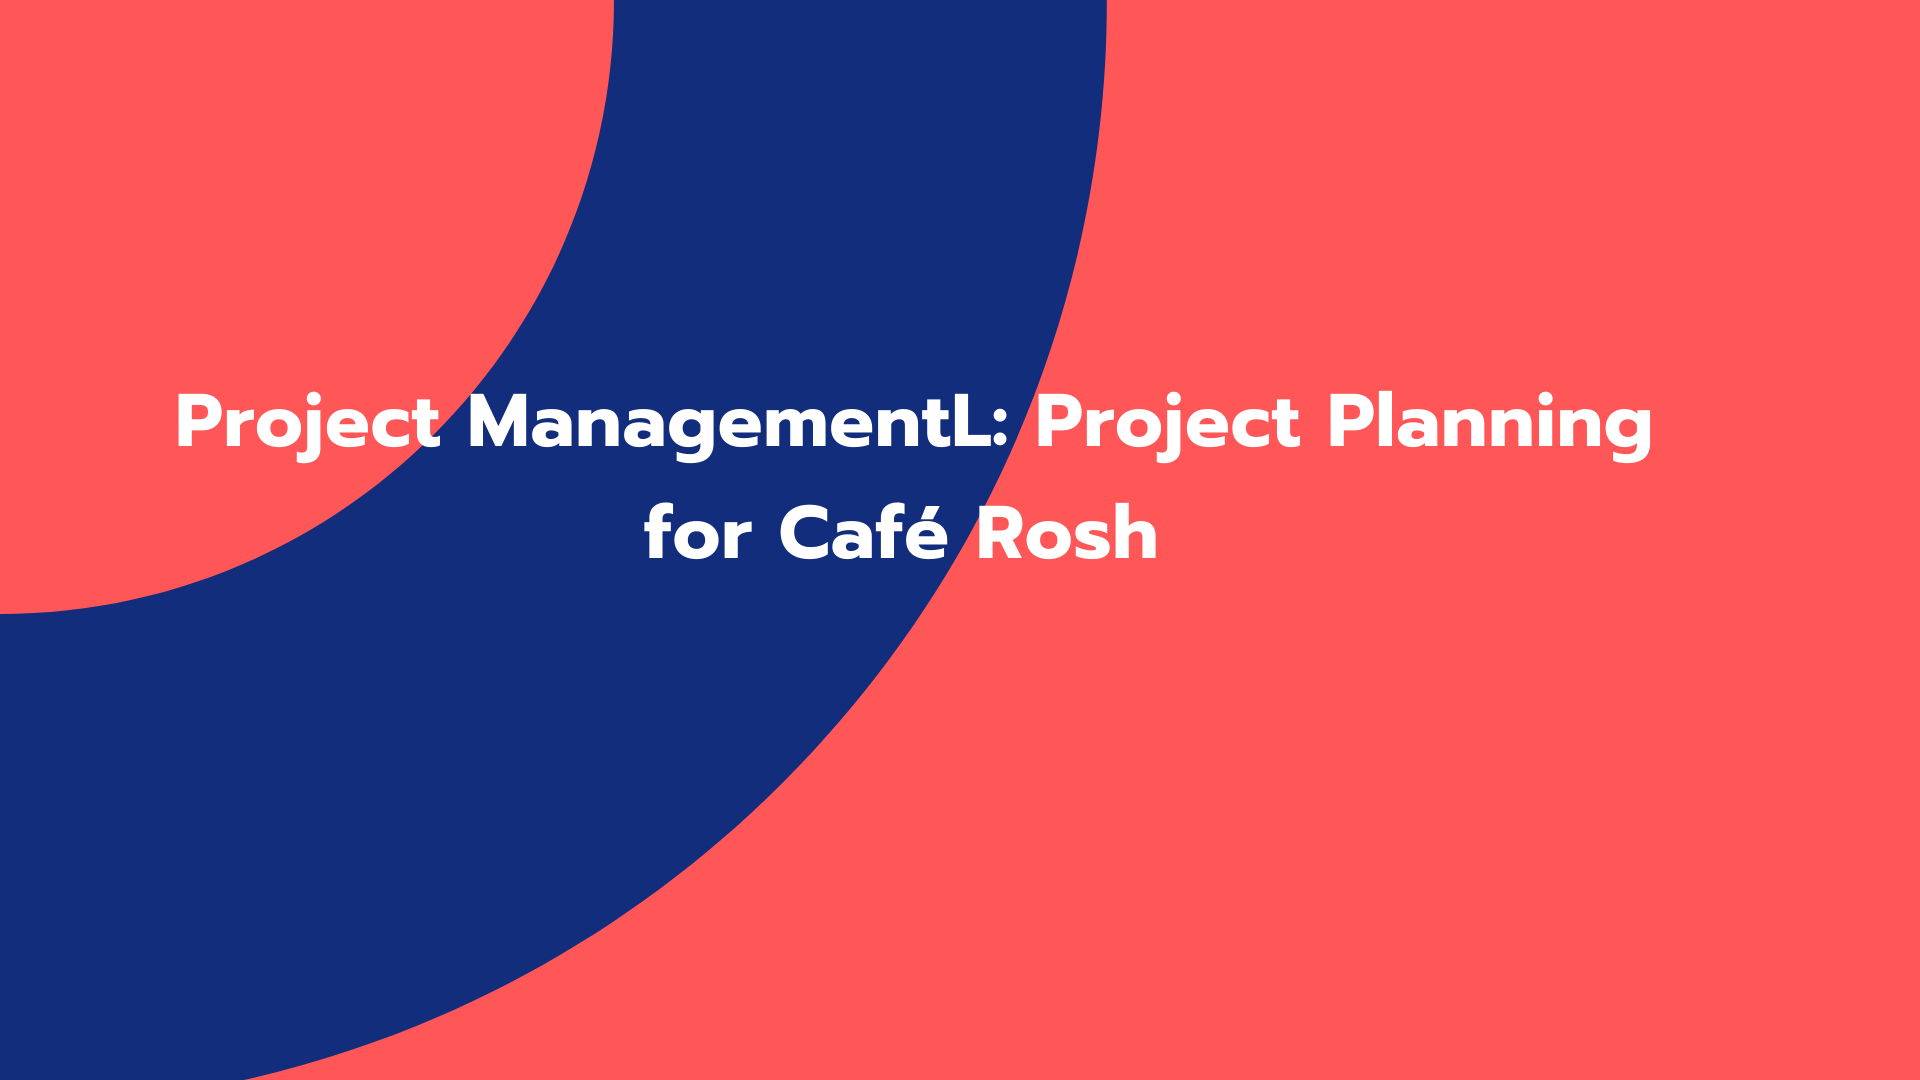 Project ManagementL: Project Planning for Café Rosh